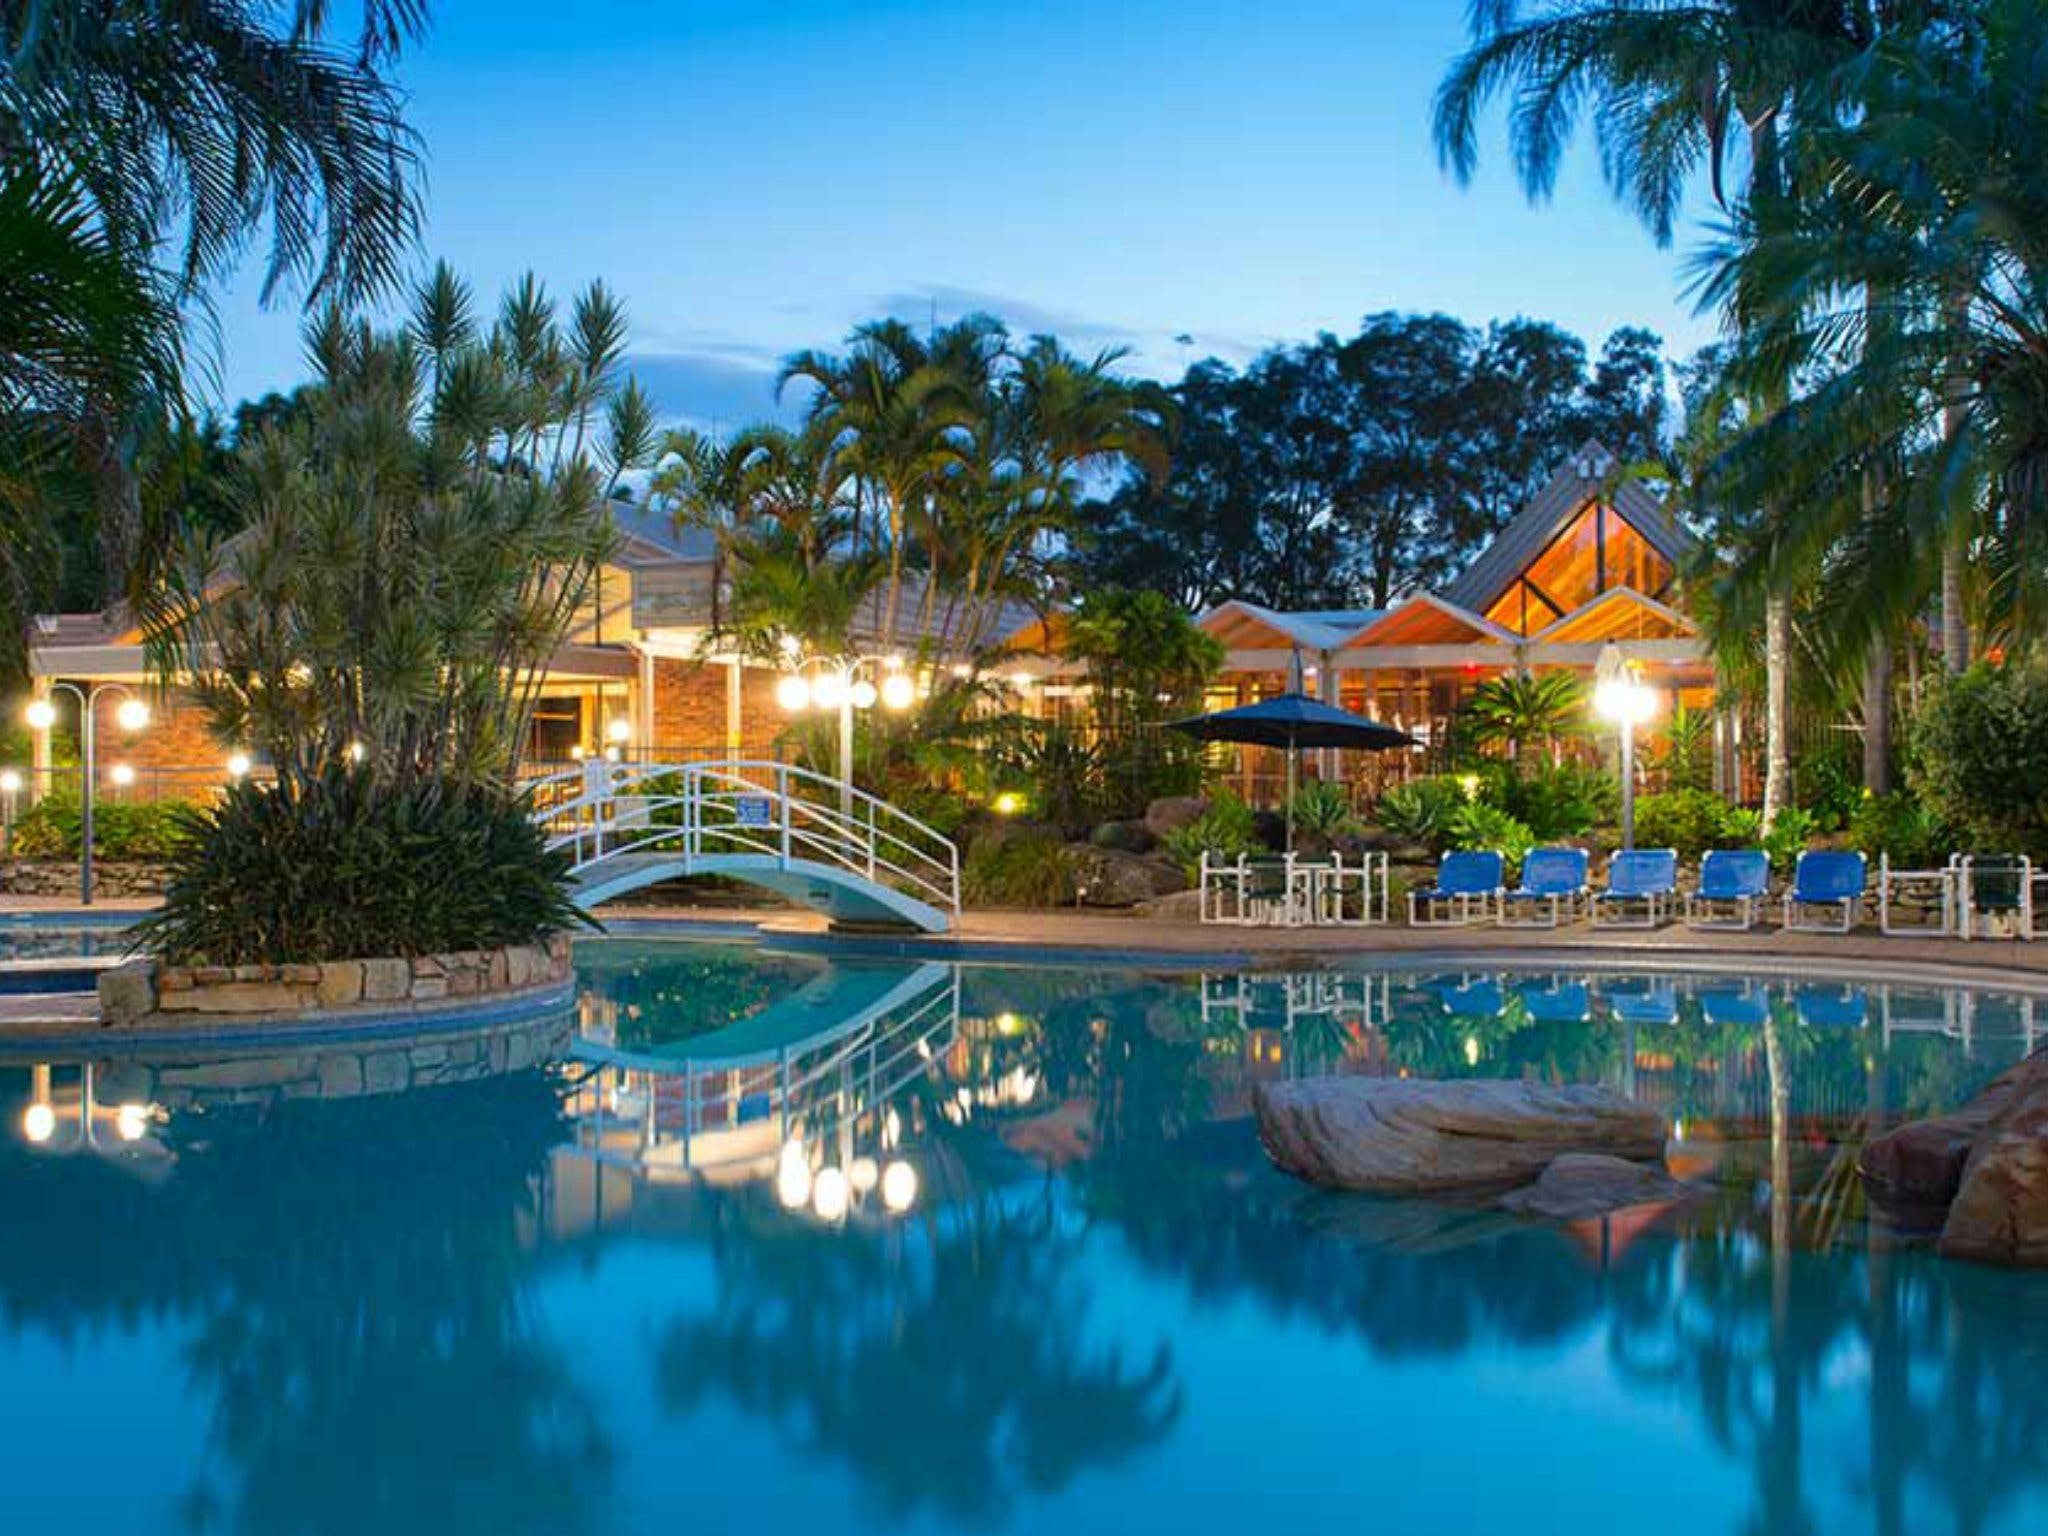 Boambee Bay Resort - Accommodation in Brisbane